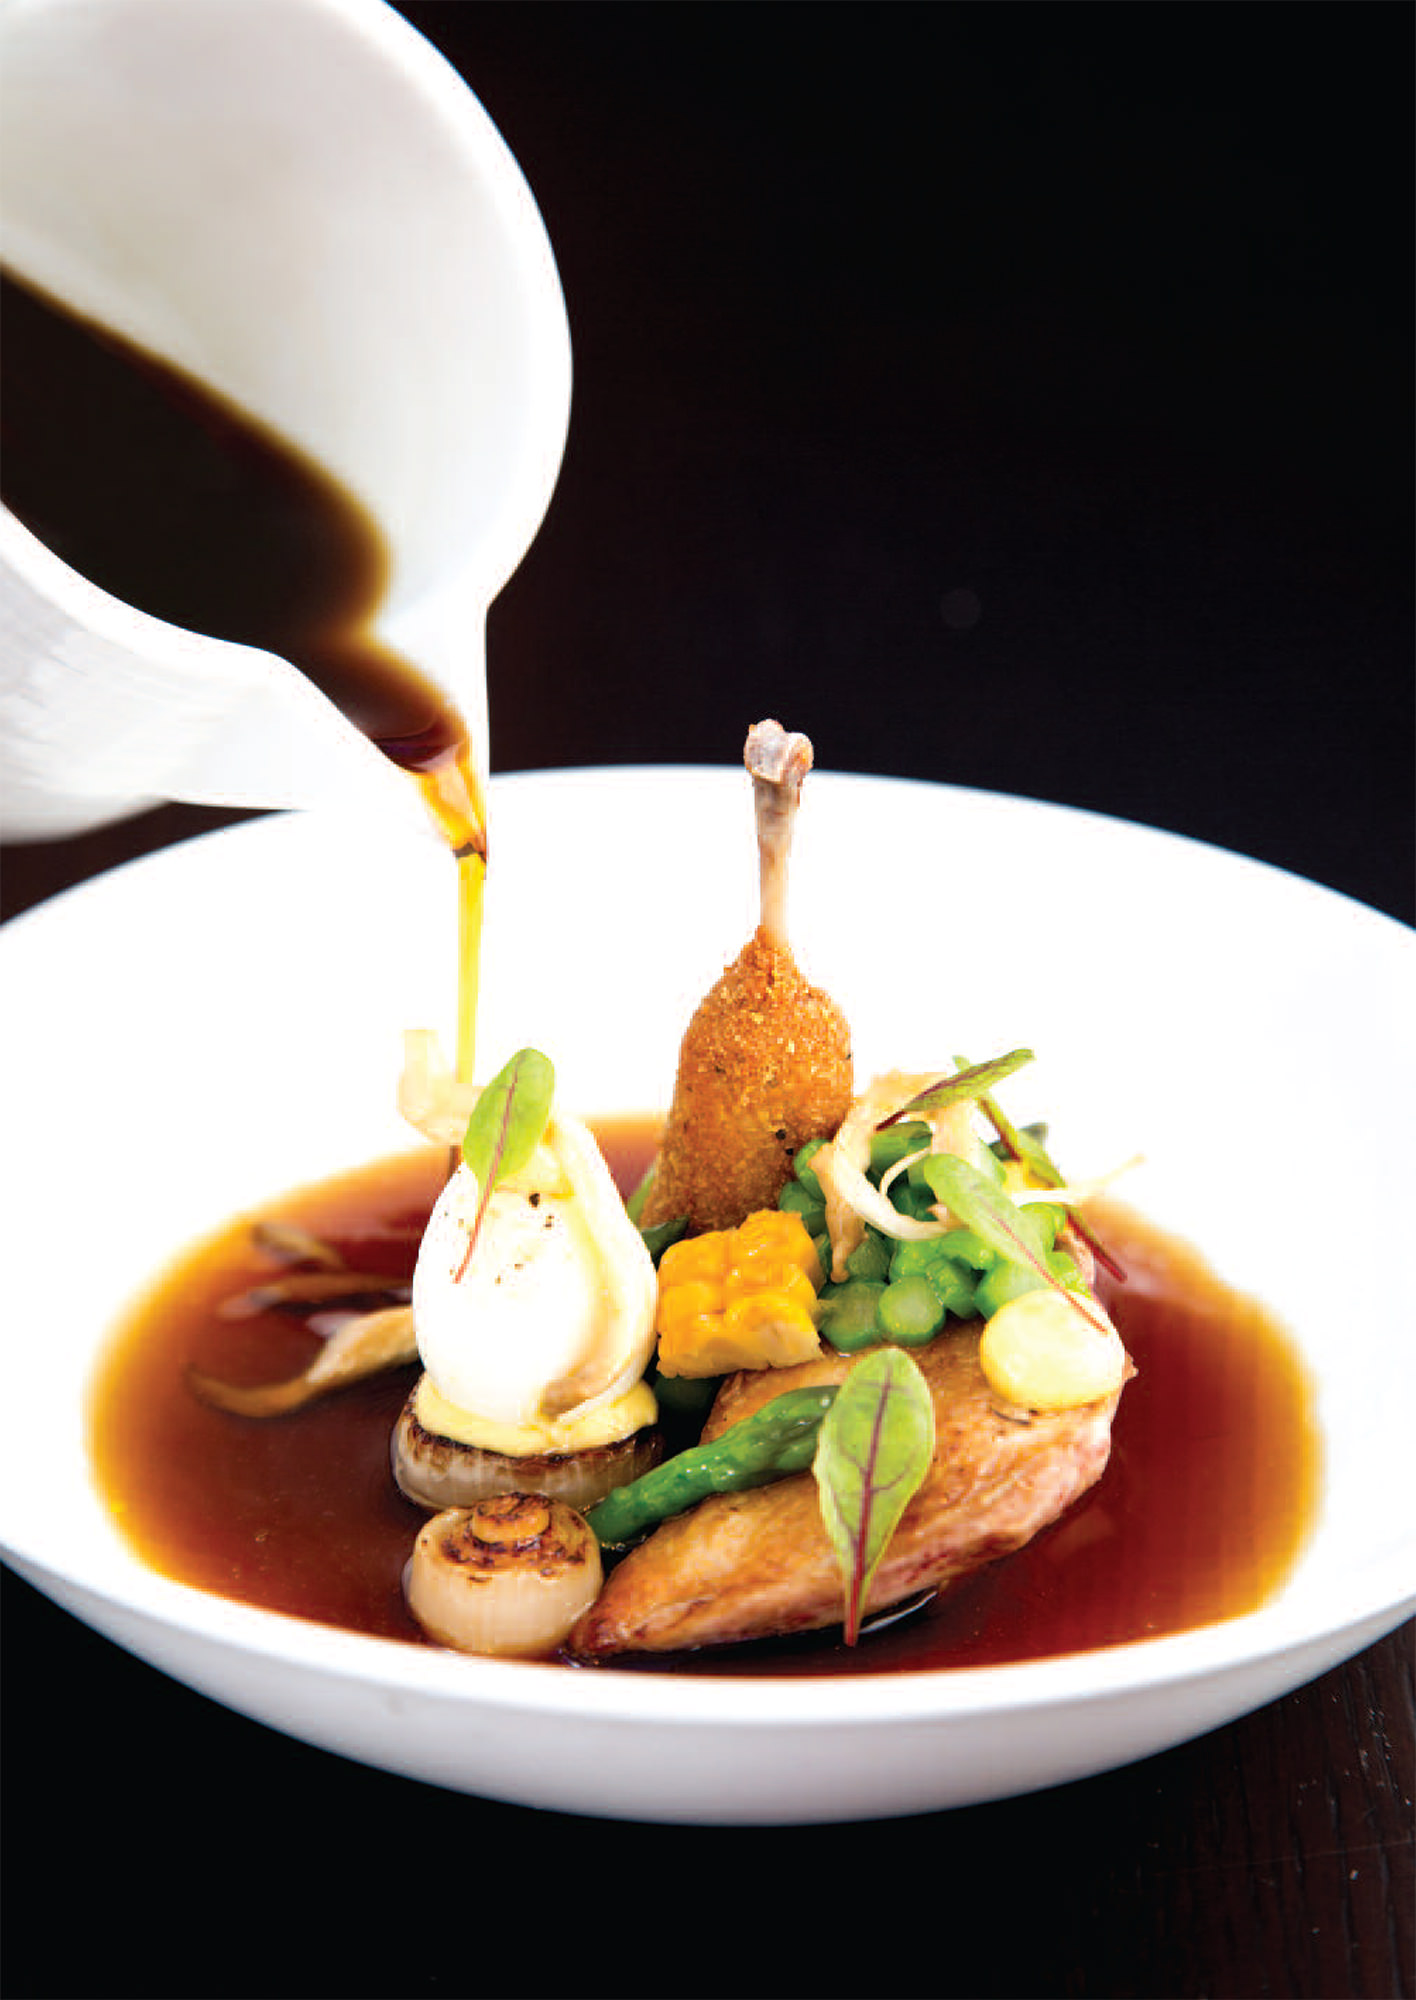 quail sweetcorn soy u0026 mushroom broth u2013 the adamson